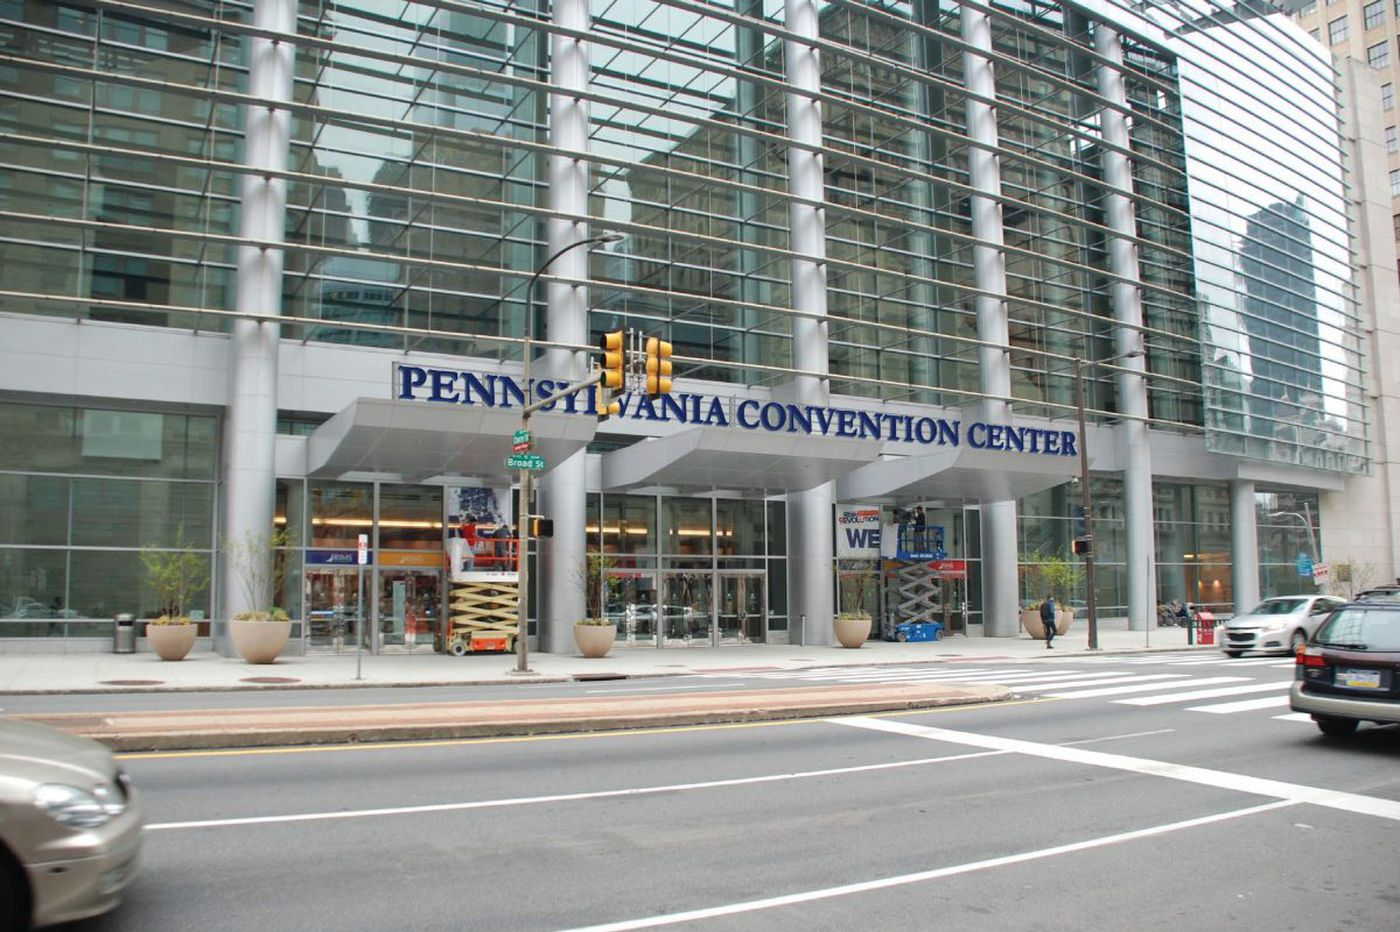 Finally, the Convention Center will get a sign on North Broad Street